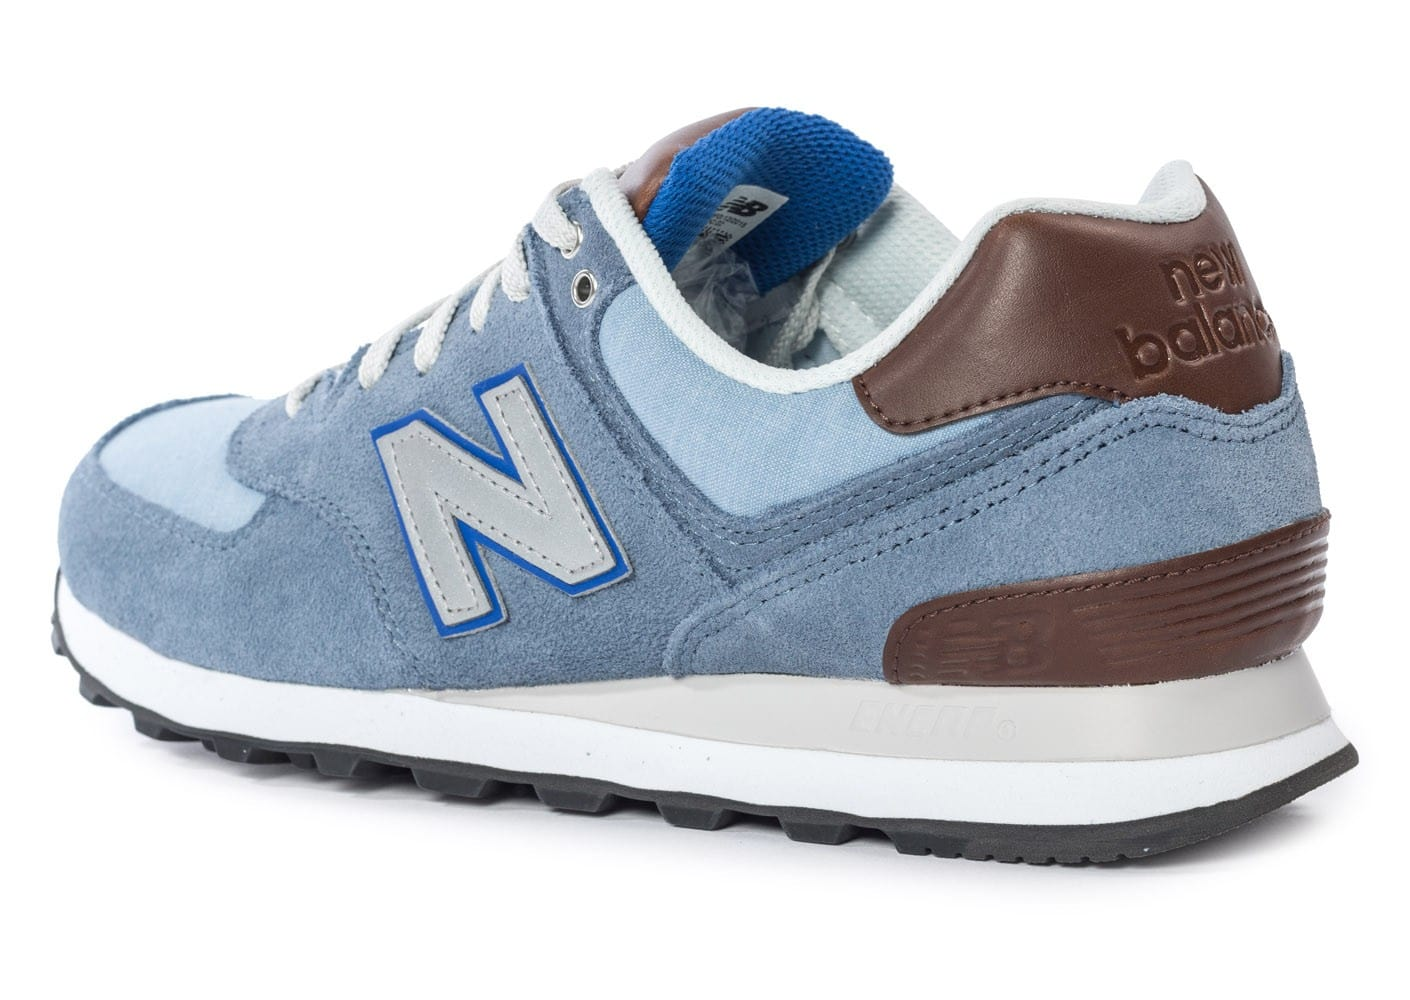 New Balance ML574 Bcd Casual Bleue Chaussures Baskets